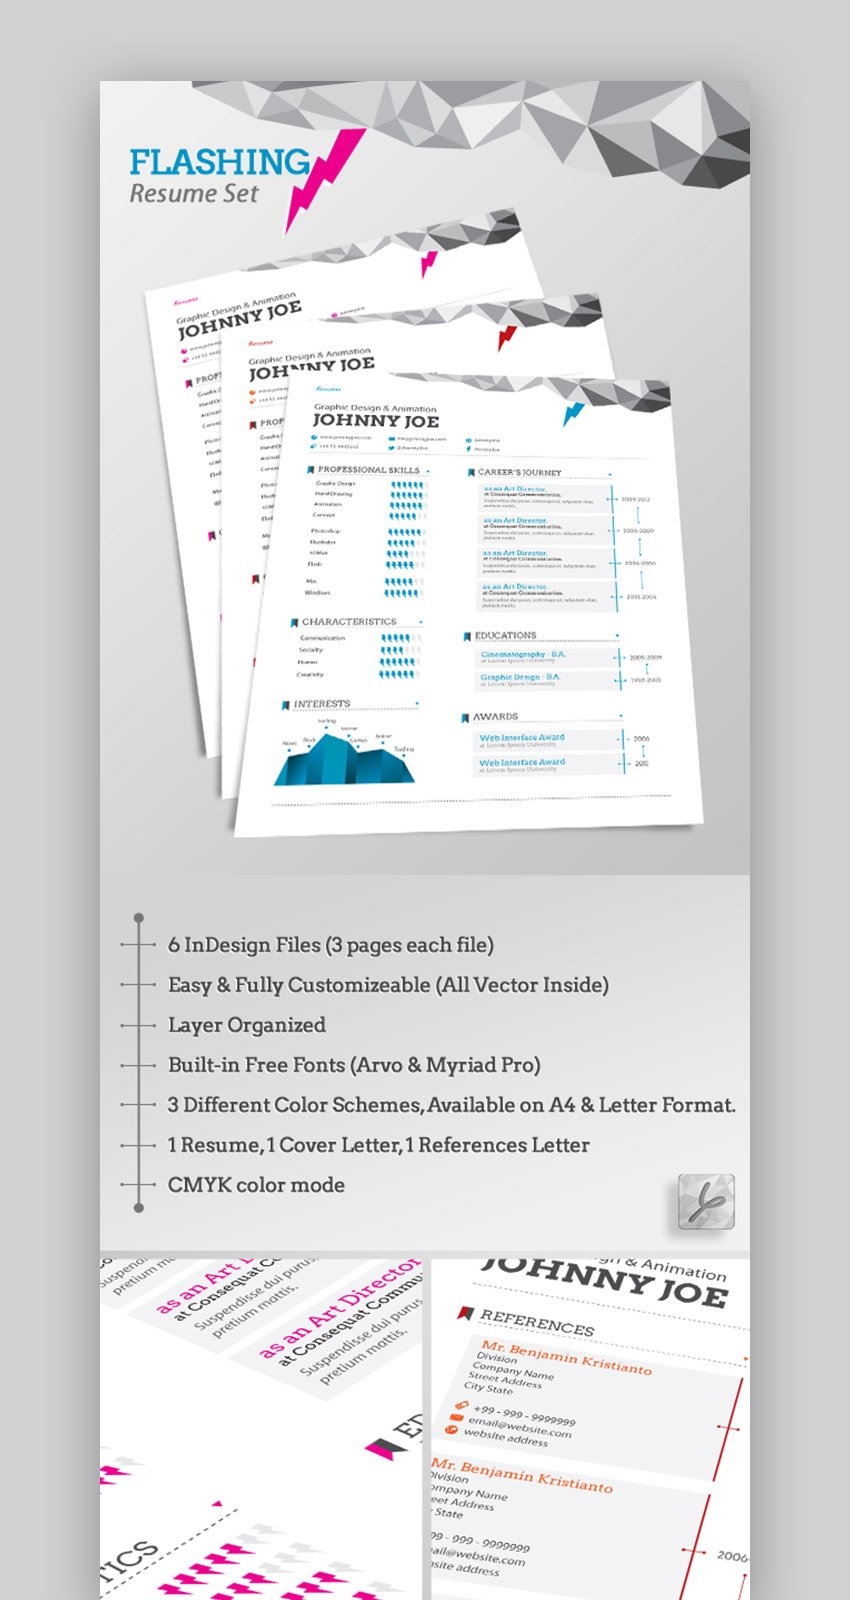 Flashing Resume with Infographic Icons